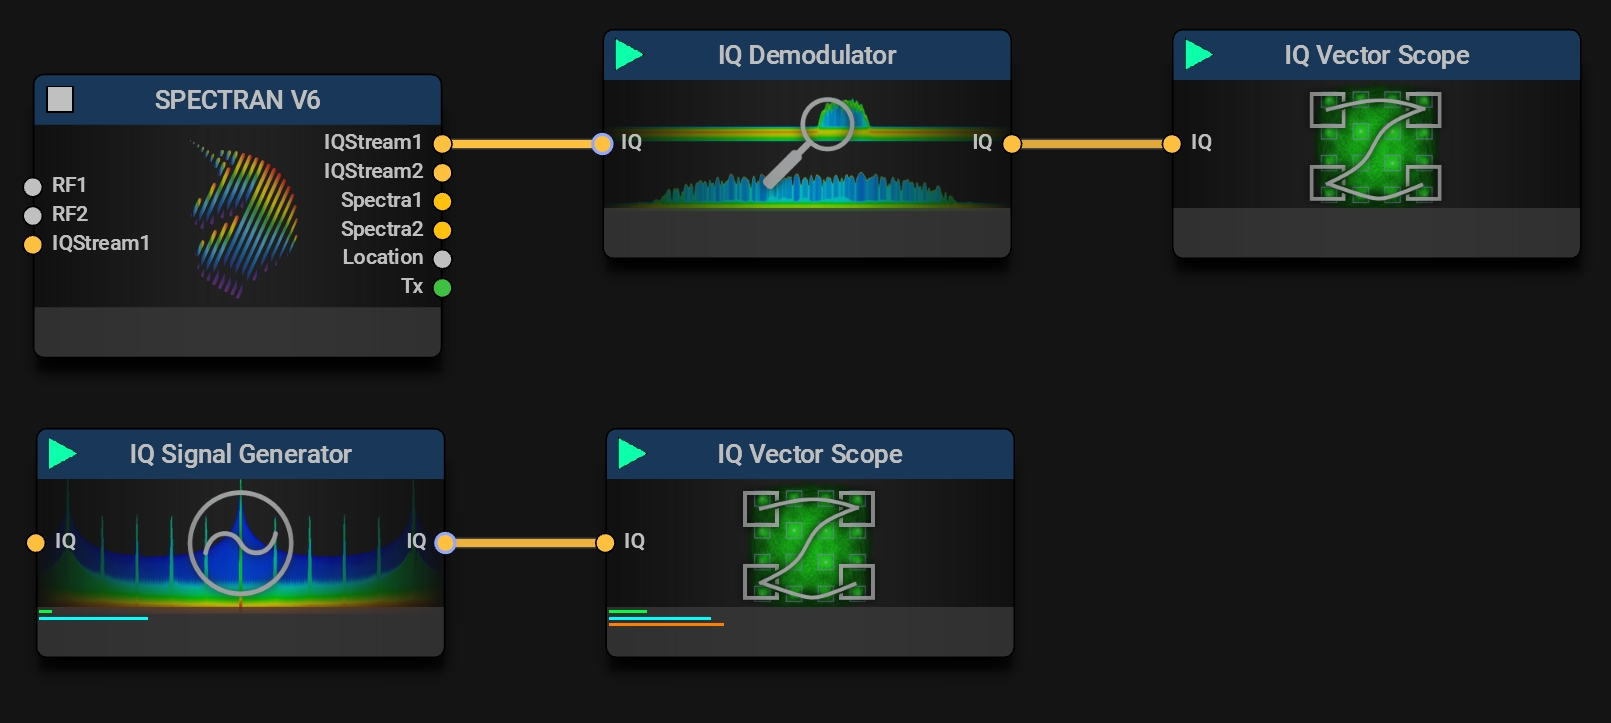 IQ Vector Scope Typical Missions